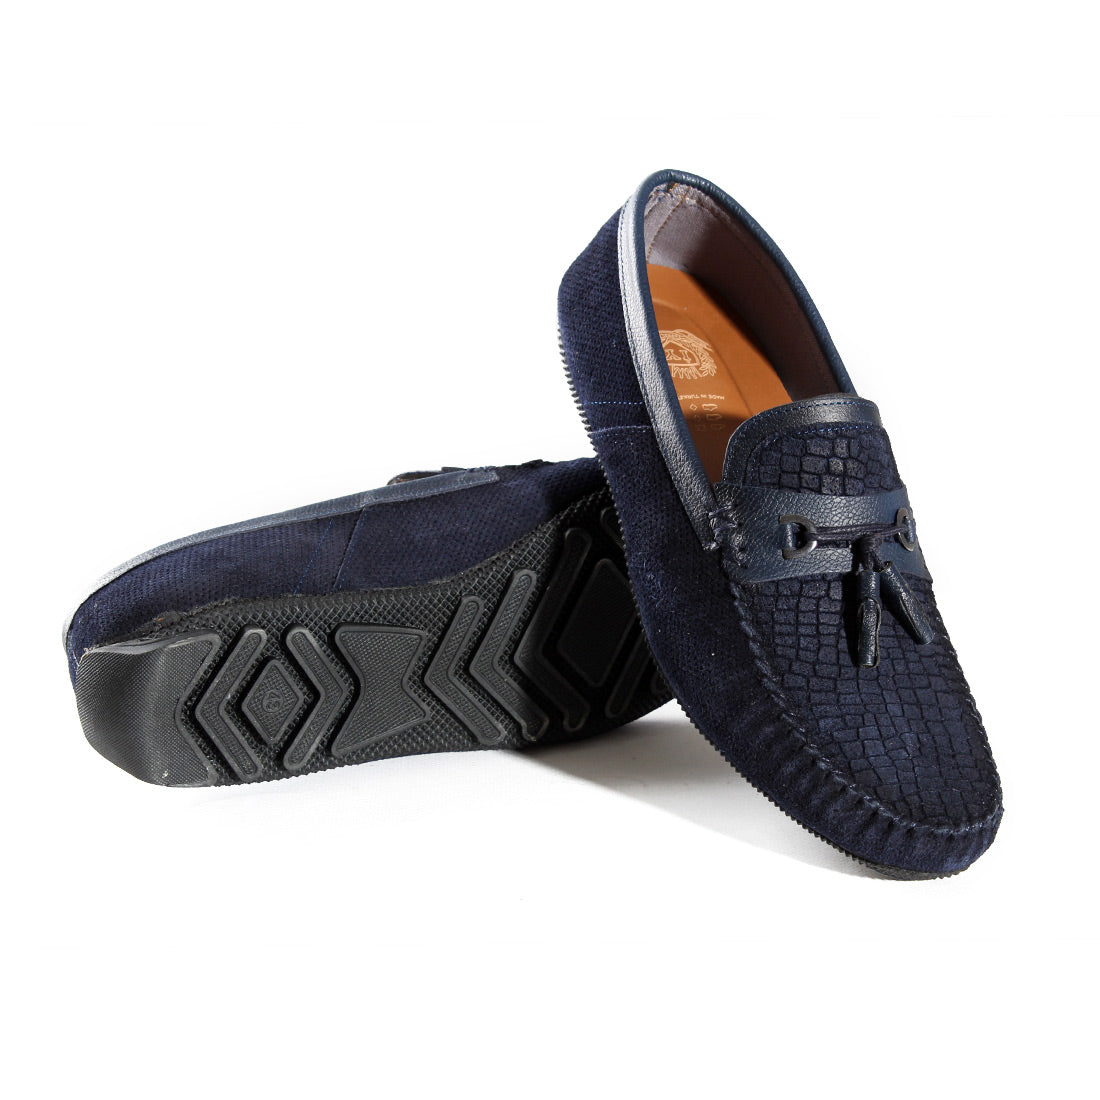 casual top sider shoes / navy / made in Turkey -3392